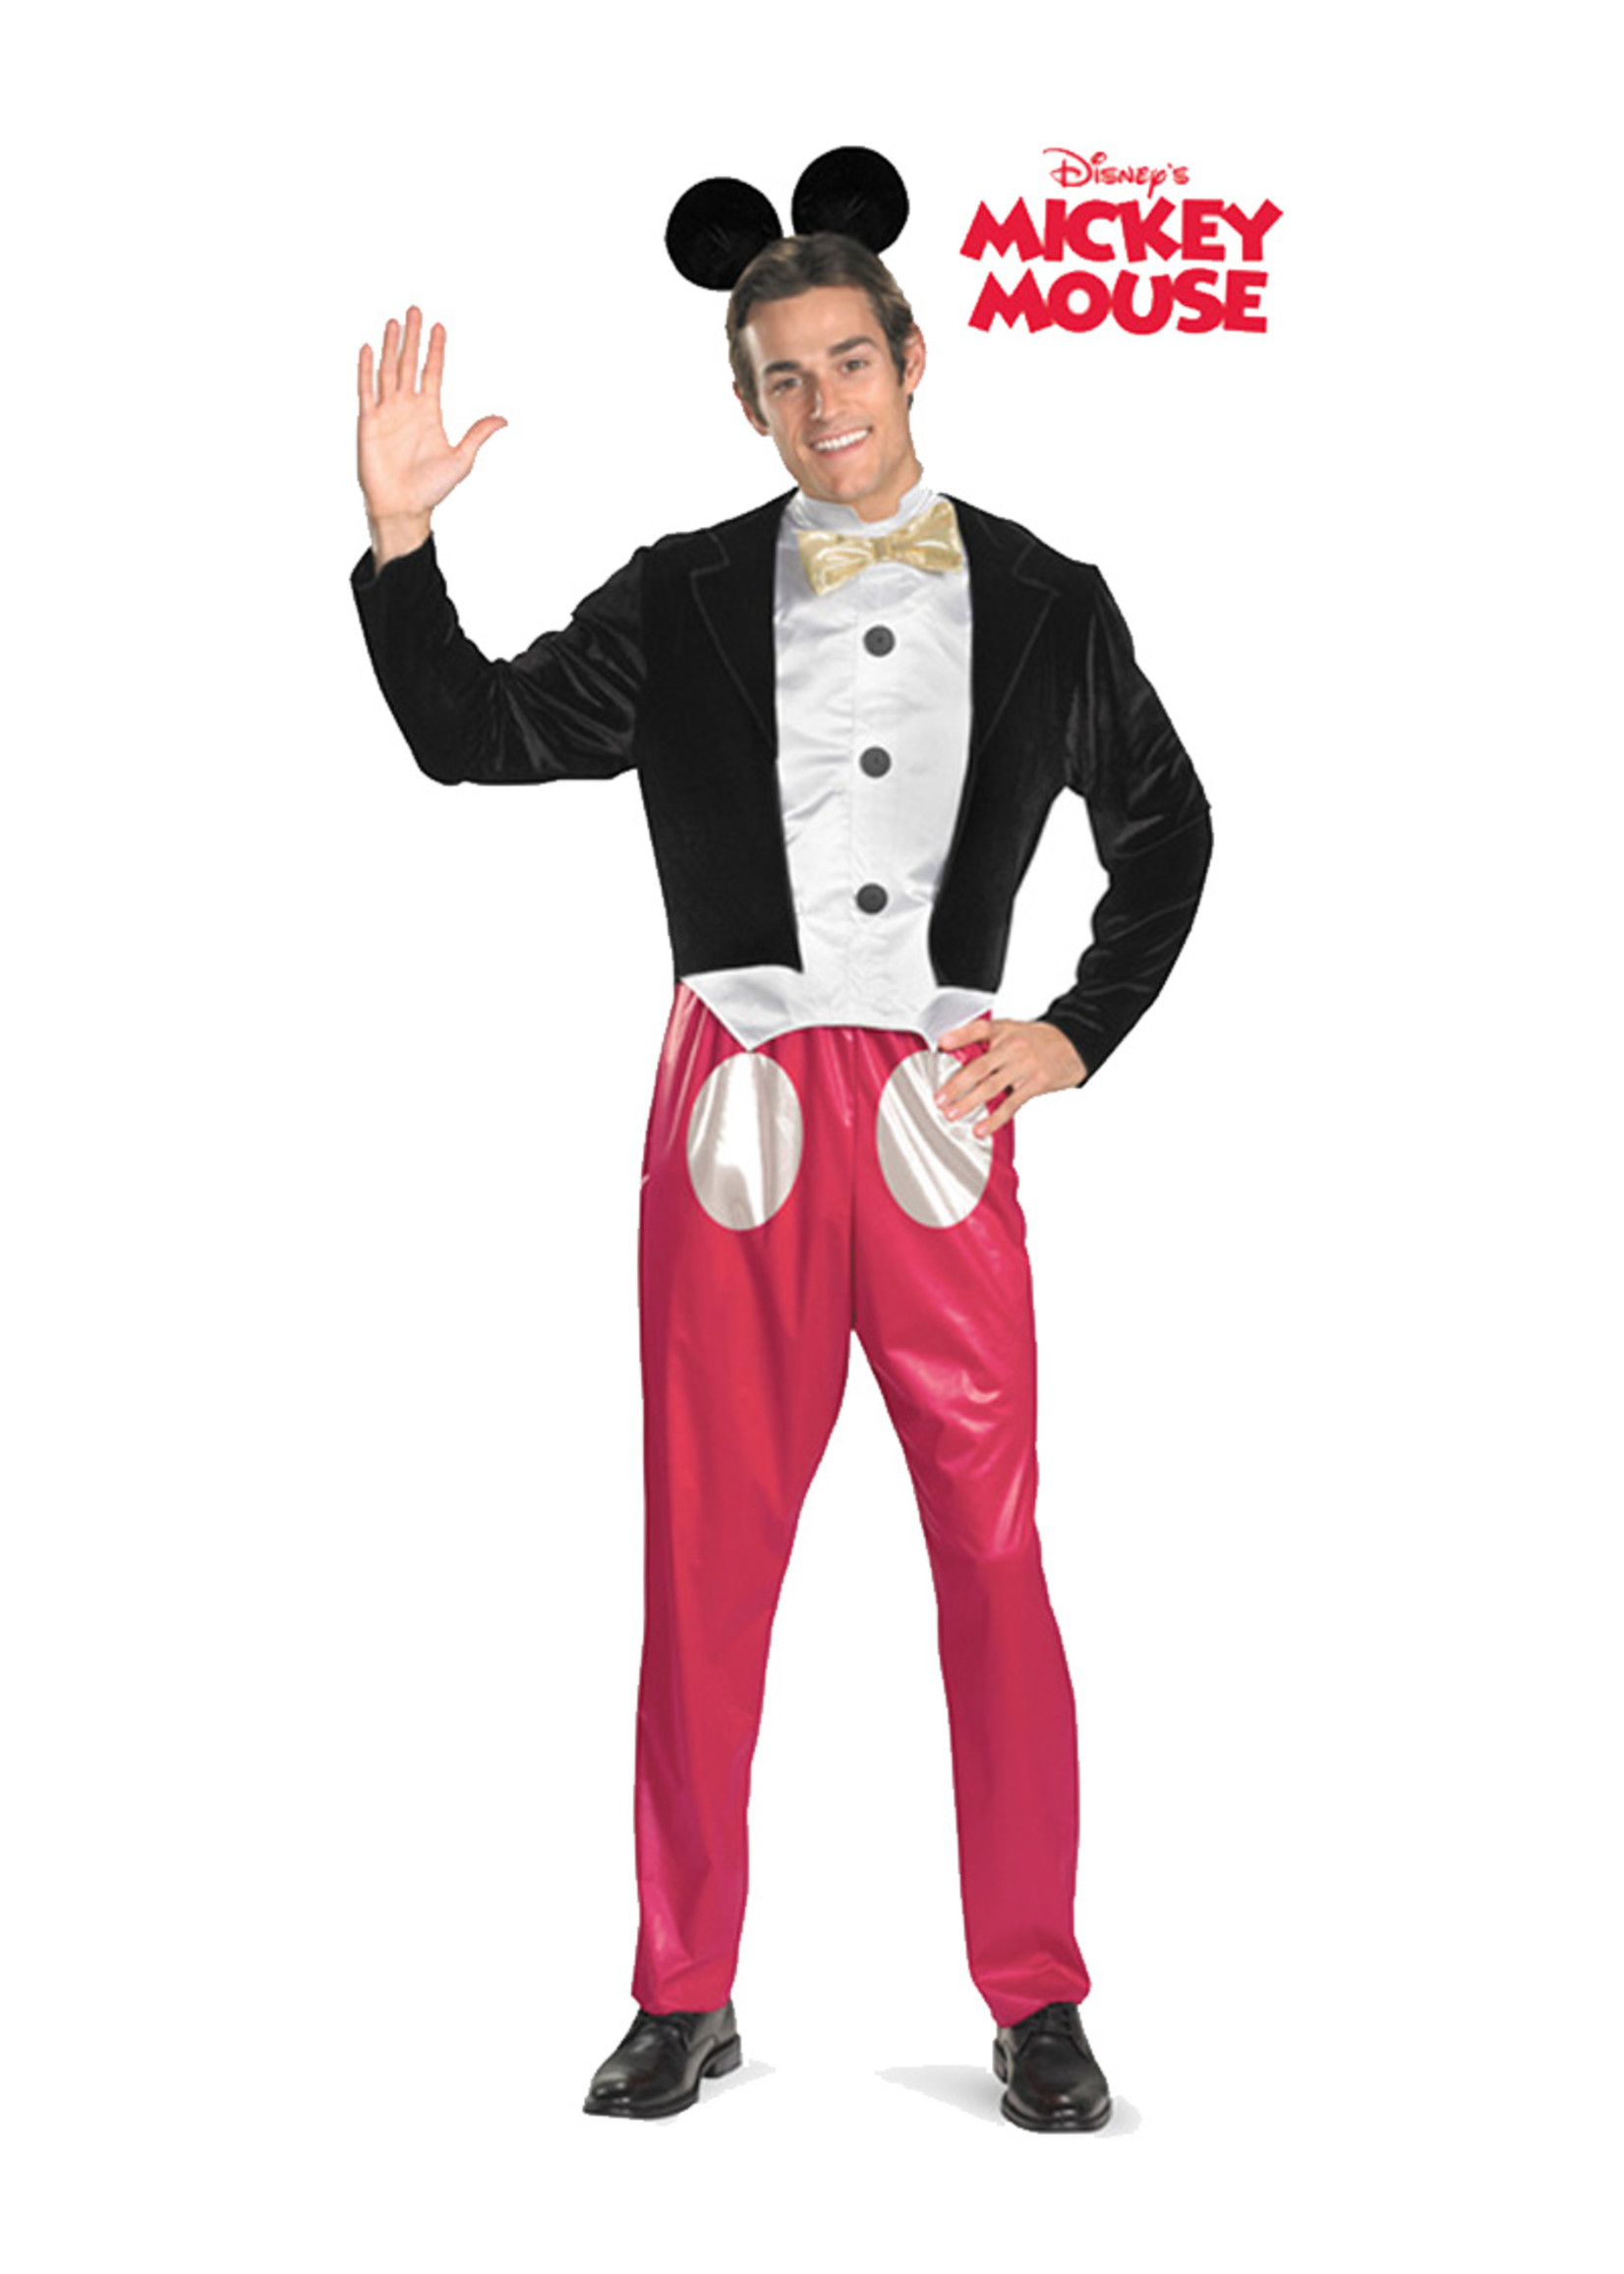 Mickey Mouse Costume - Men's